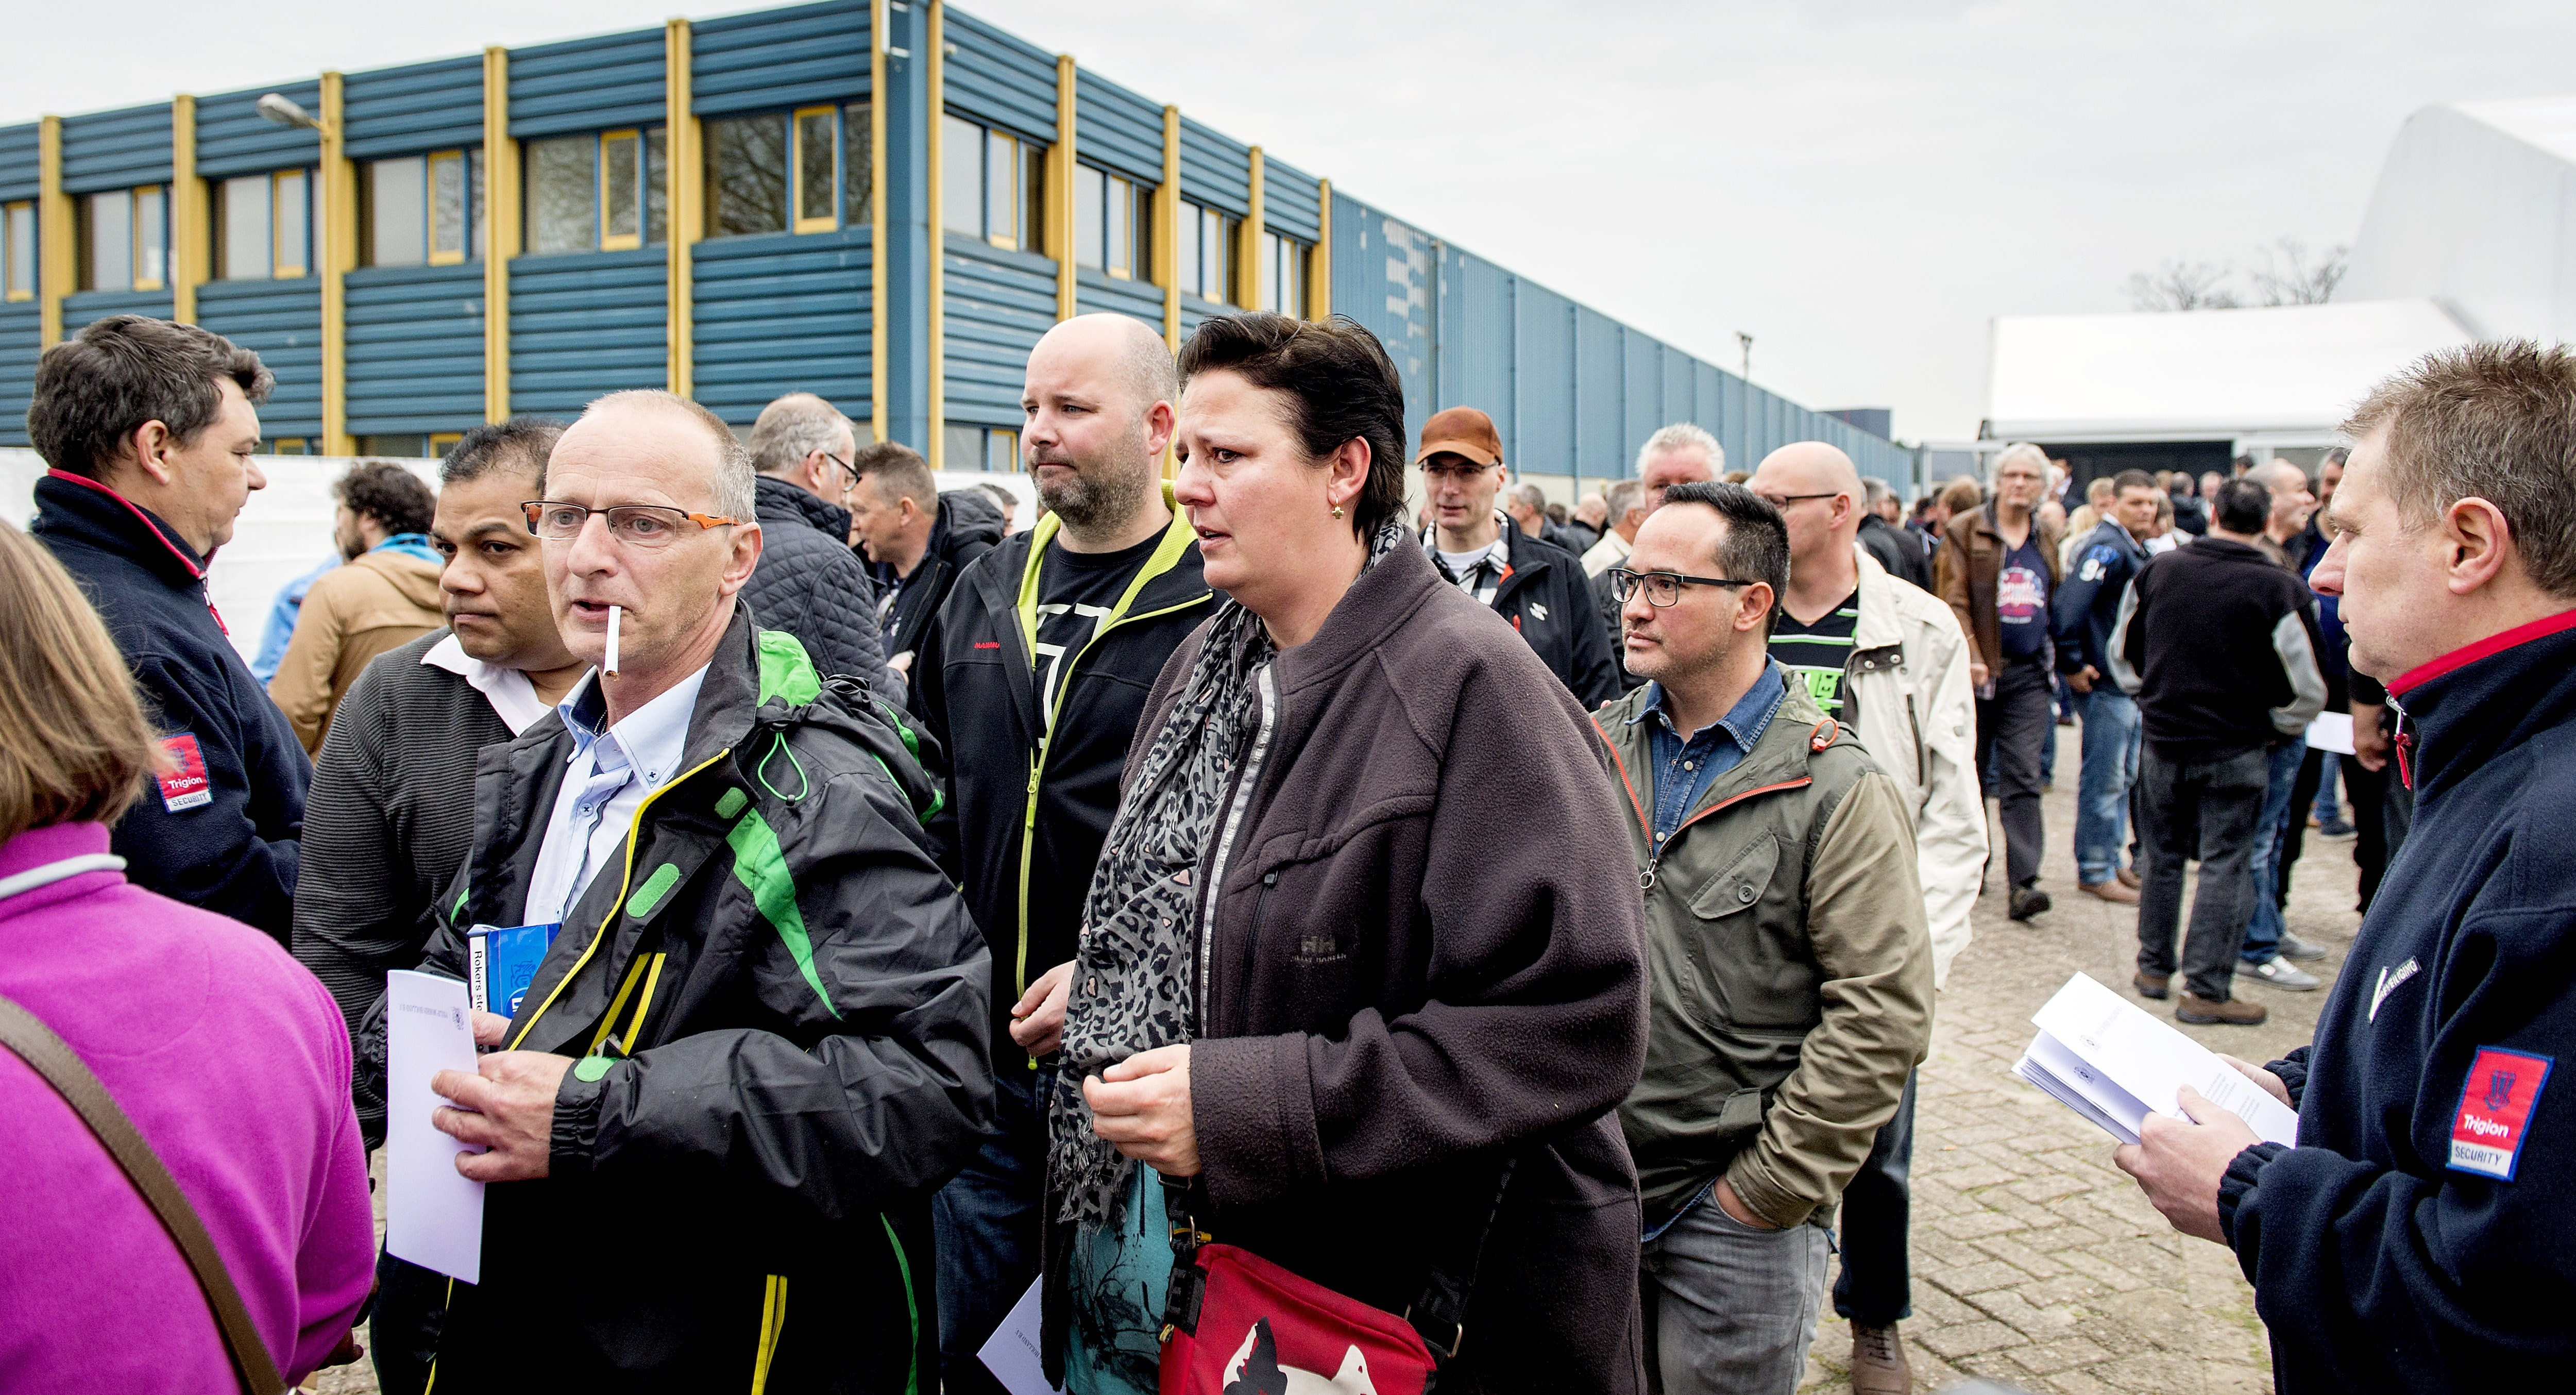 """A """"complex and atypical year"""" - Philip Morris employees in Bergen op Zoom, the Netherlands, striking against plans to close their plant."""